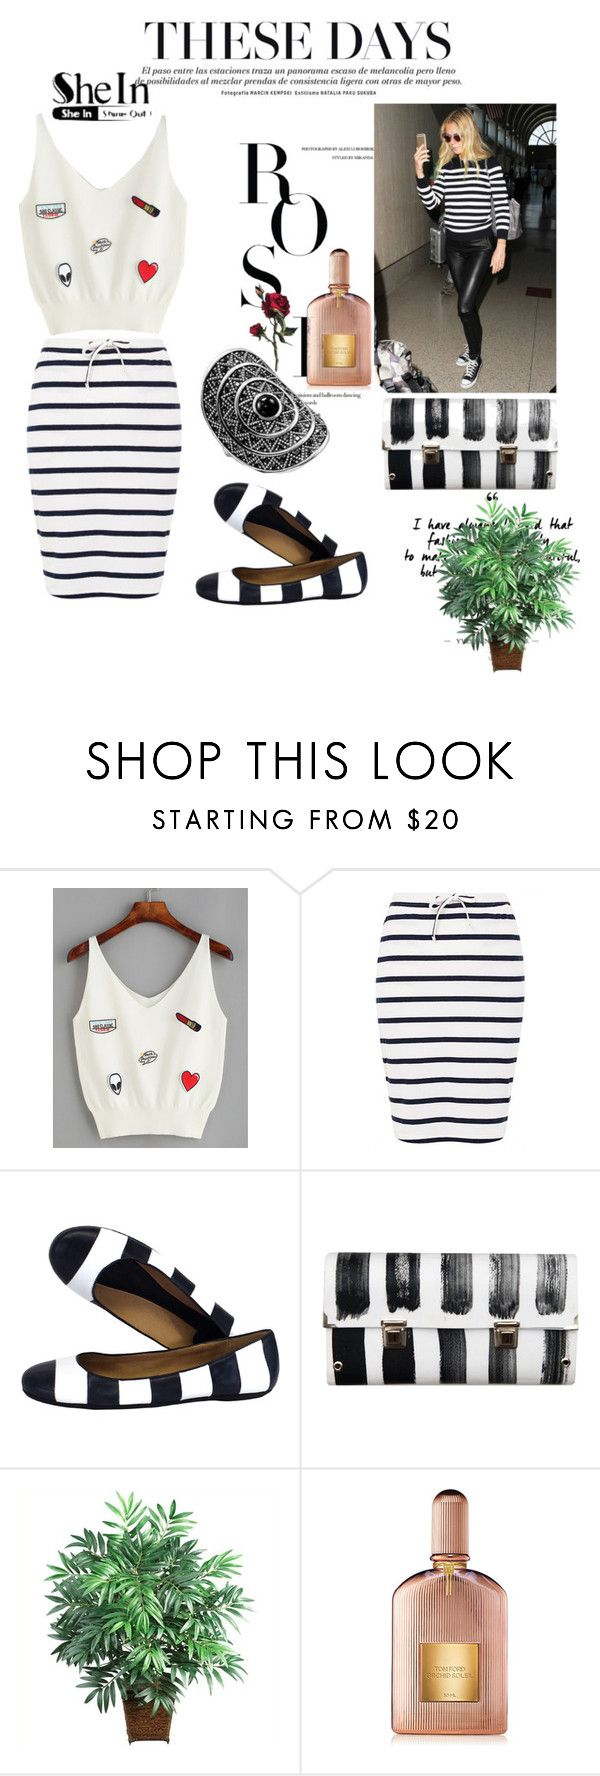 """Shein"" by loveliest-back ❤ liked on Polyvore featuring Kerr®, Ichi, Kate Spade, Spanaki, Thomas Sabo, Nearly Natural and Tom Ford"